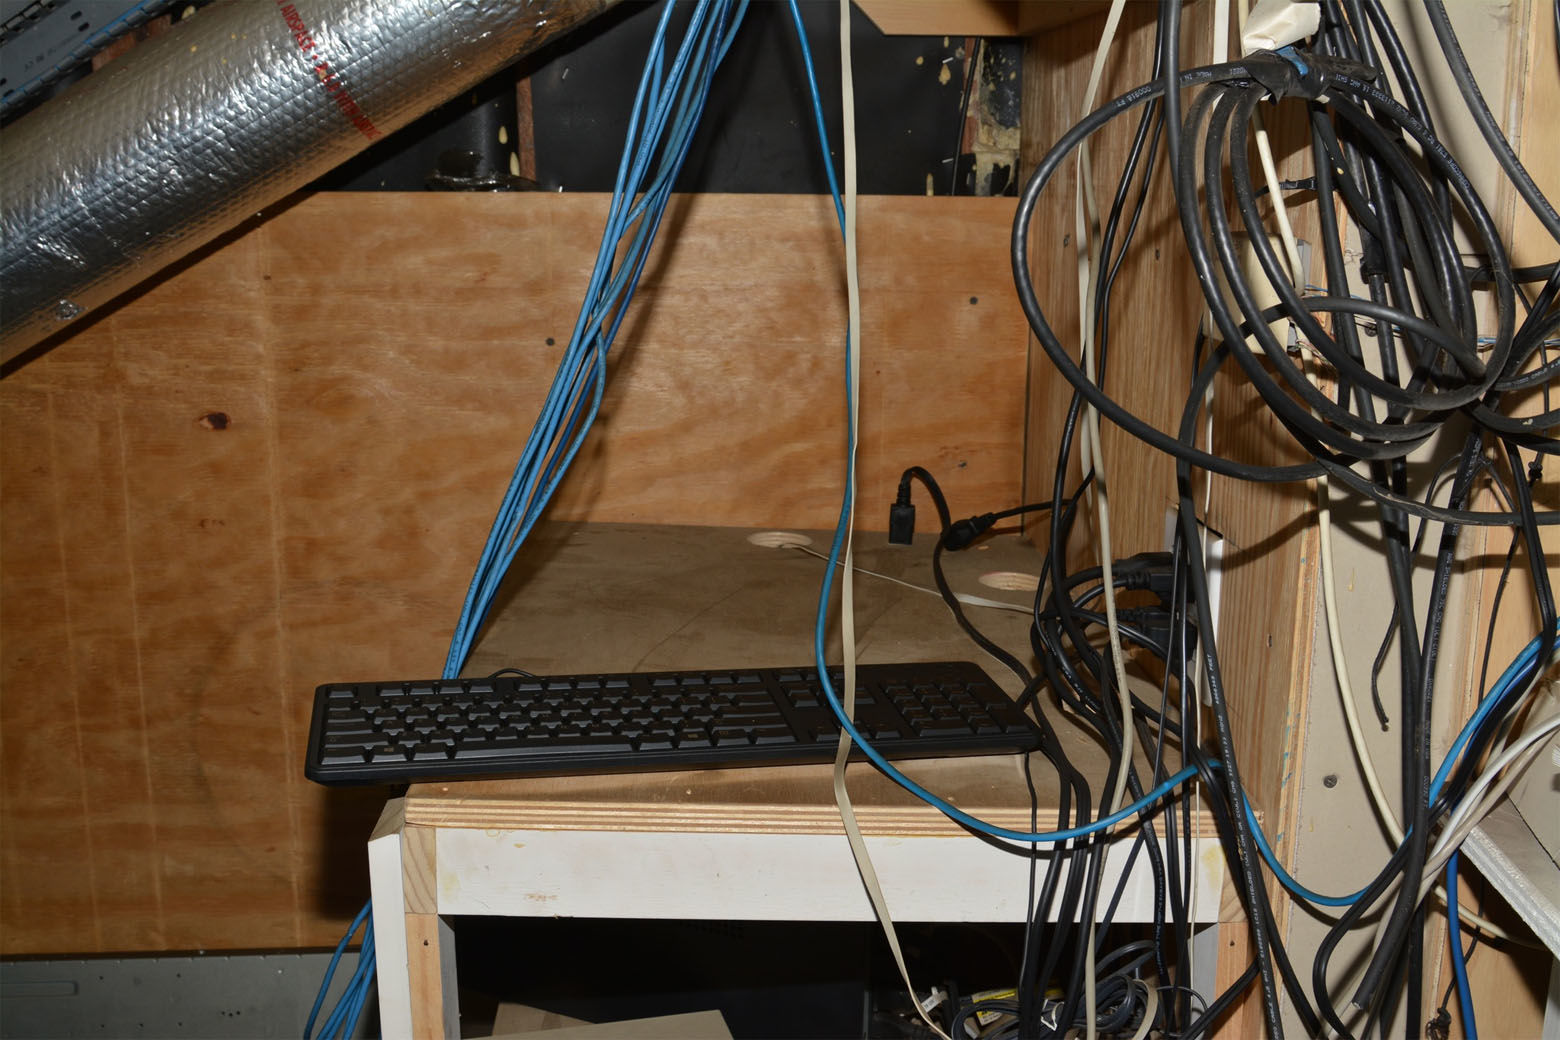 A computer containing video footage from the house's surveillance system was removed from a utilty closet in the house's attic. Several hours after the family was taken captive, prosecutors said Daron Wint made Savvas Savopoulos send a string of emails to their security company asking questions about how the security system worked. In particular, he wanted to know if the video footage was stored off-site in the cloud. It wasn't -- all the footage was stored on a local hard drive. The computer was stolen from the house and never recovered. (Courtesy U.S. Attorney's Office for D.C.)